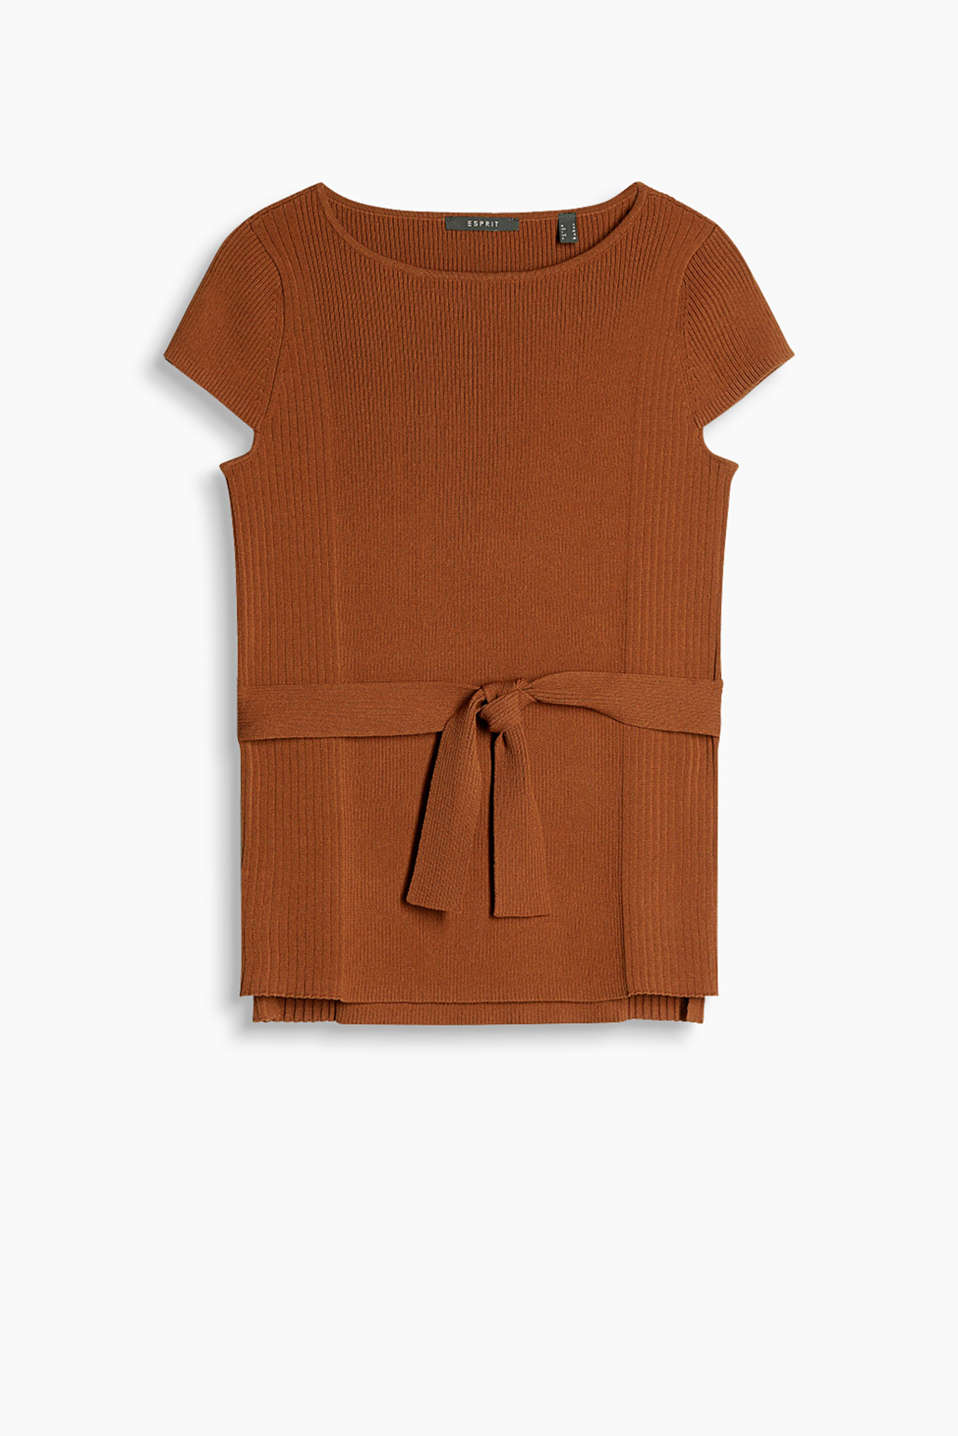 Jumper in firm crêpe yarn with a subtle grain, ribbed textured, cropped sleeves and a tie-around belt fixed at the sides